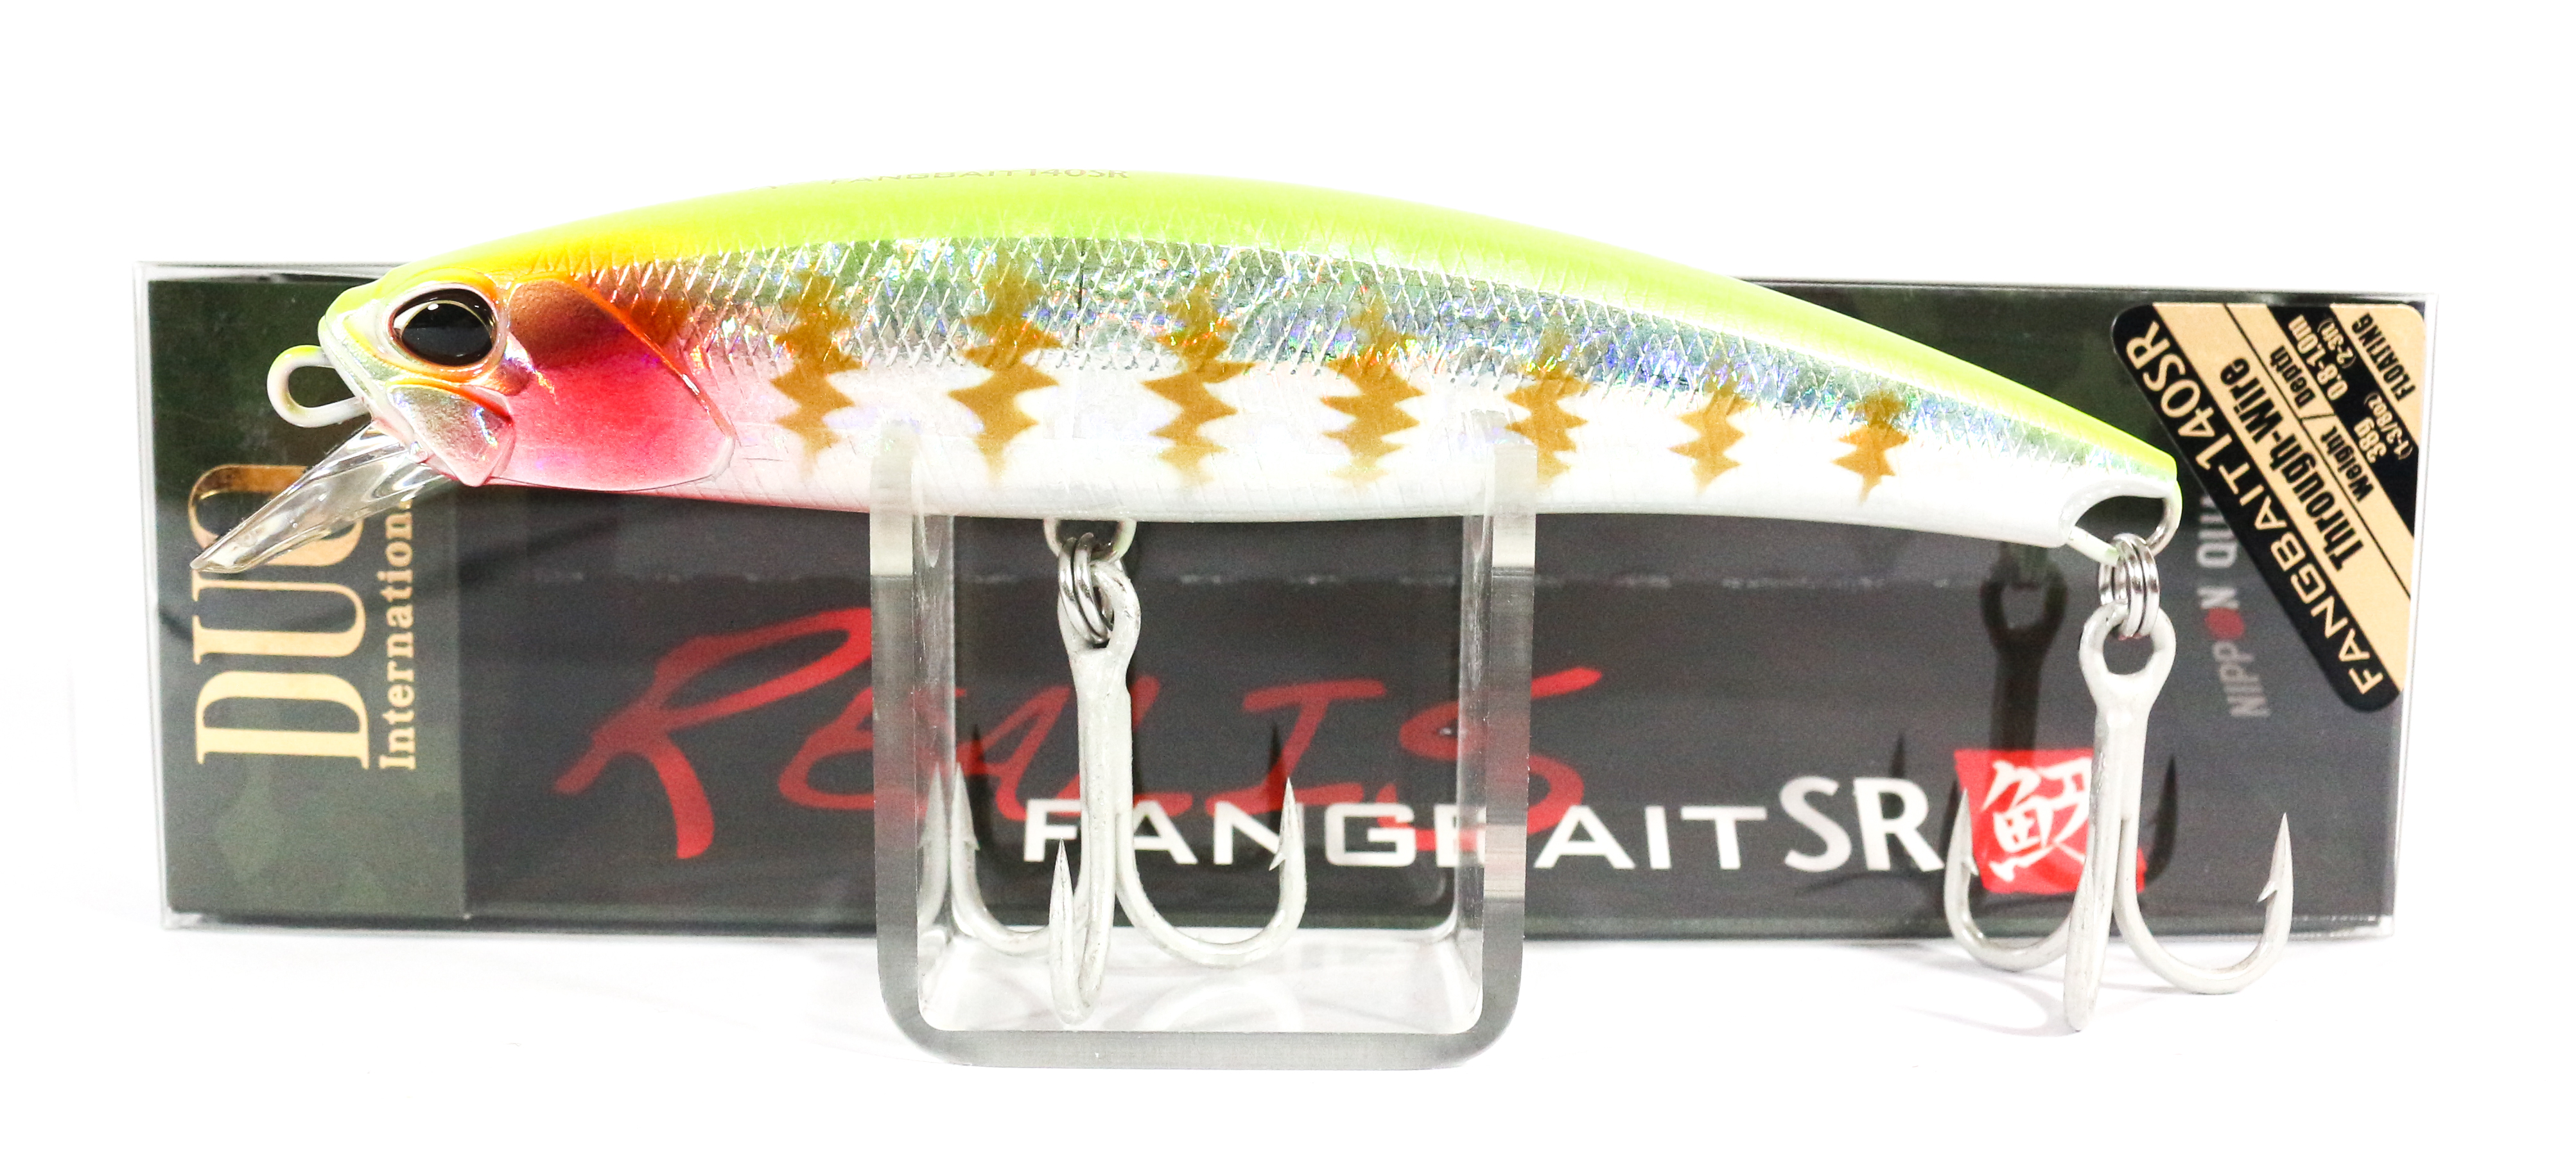 Sale Duo Realis Fangbait 140SR Floating Lure ADA3305 (3656)